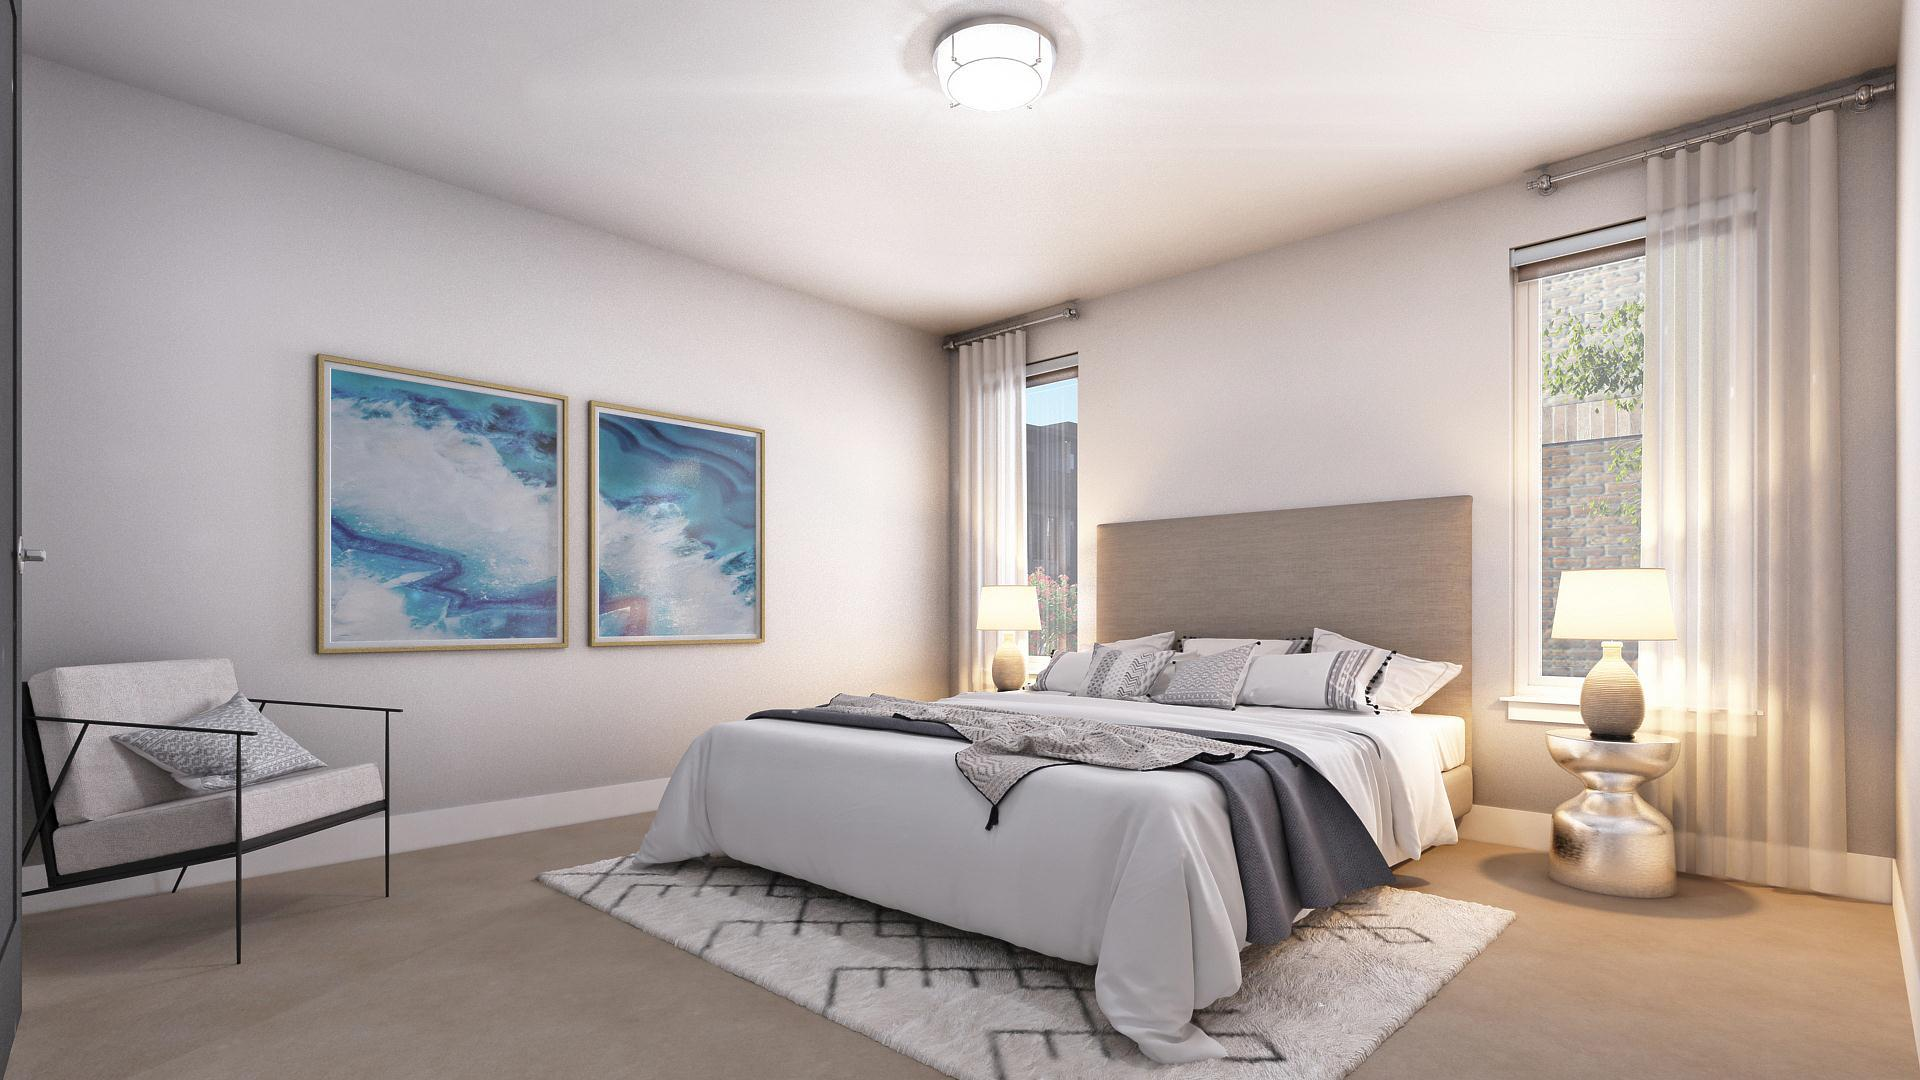 Bedroom featured in the Atlas - Main Floor Master End Unit By Koelbel Urban Homes in Denver, CO